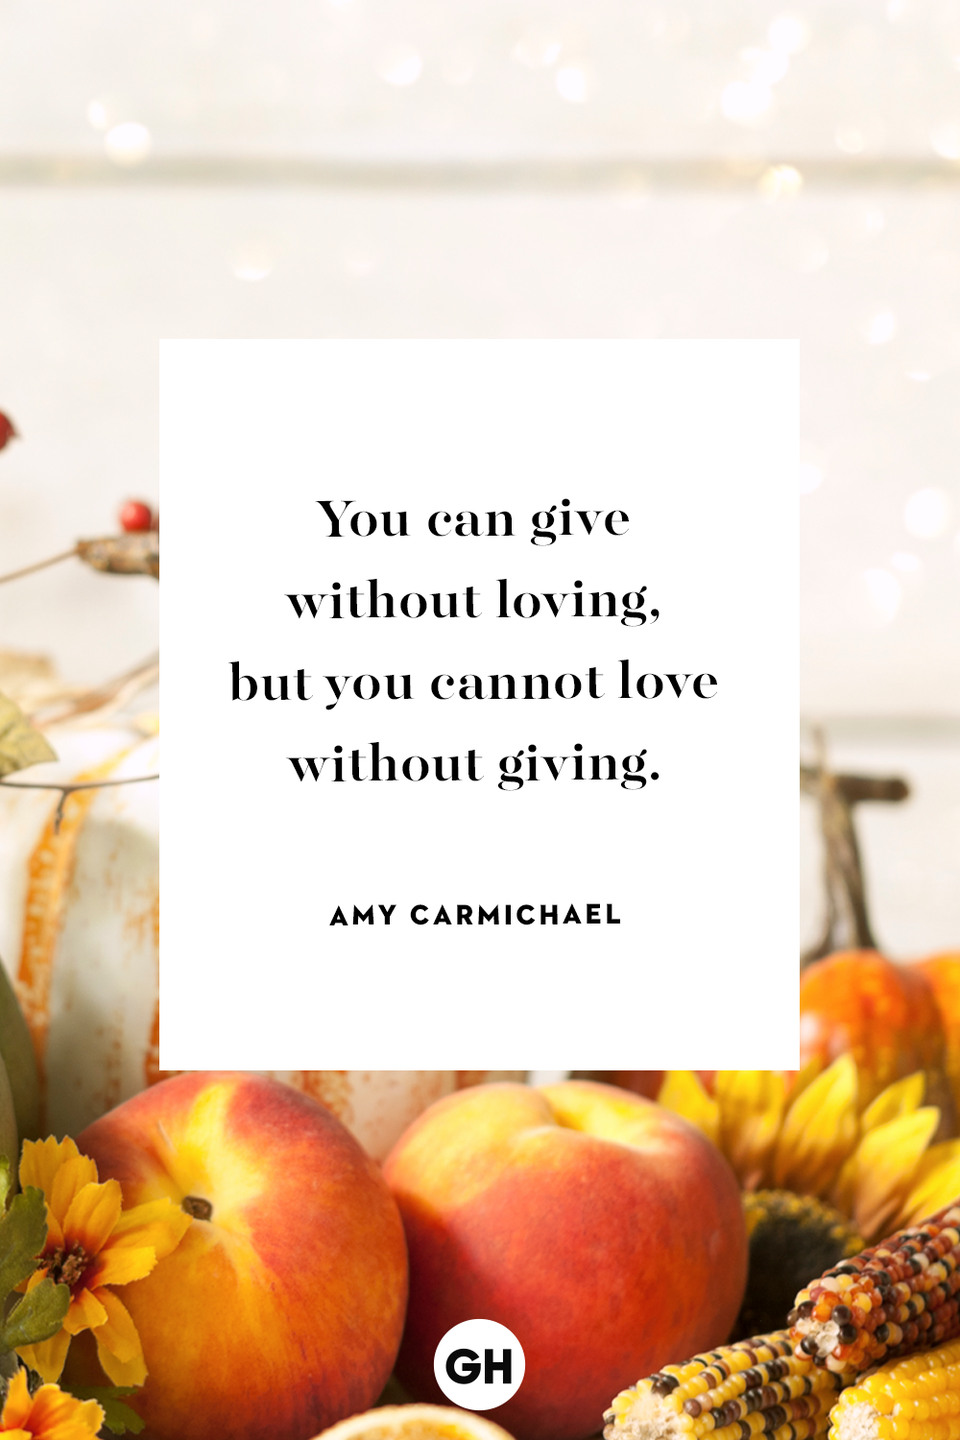 <p>You can give without loving, but you cannot love without giving.</p>